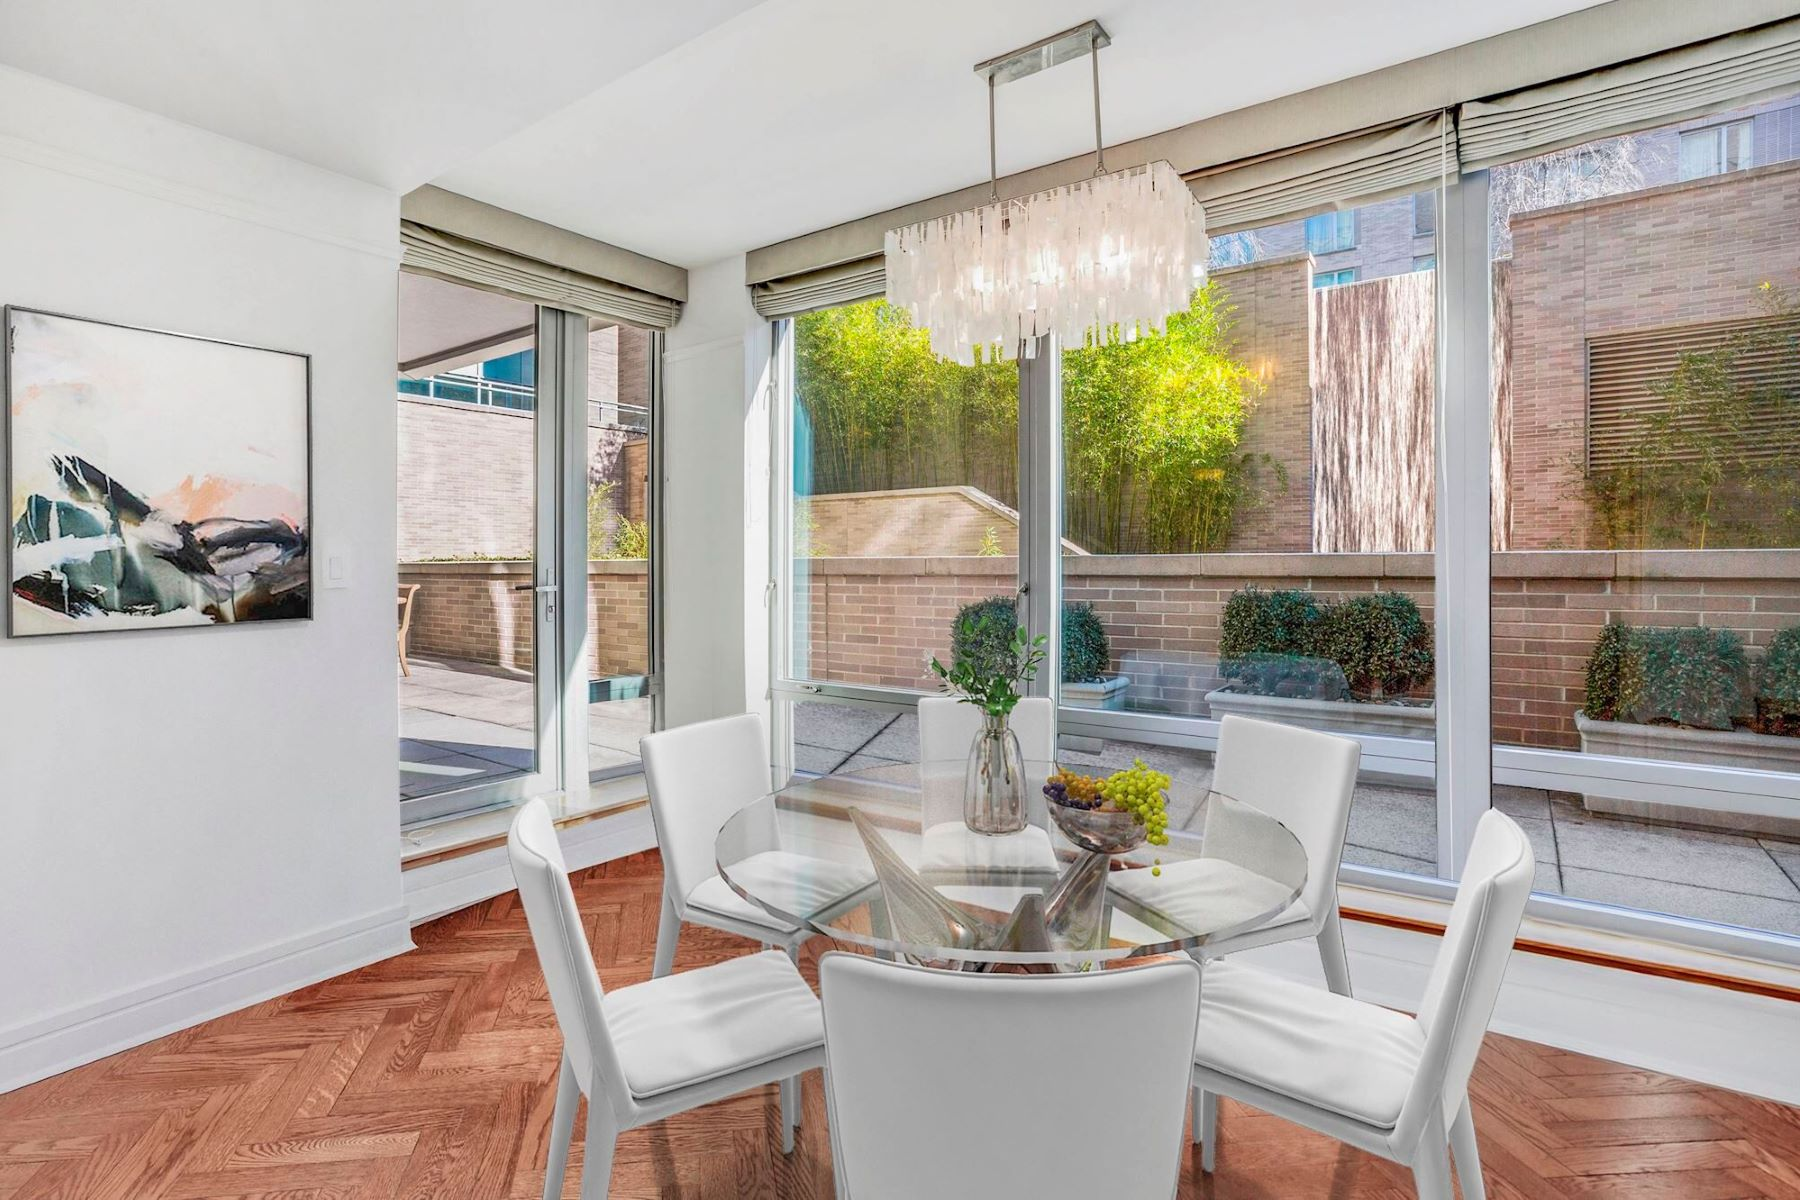 Condominium for Sale at 1111 23rd St NW #2e 1111 23rd St NW 6a Washington, District Of Columbia 20037 United States